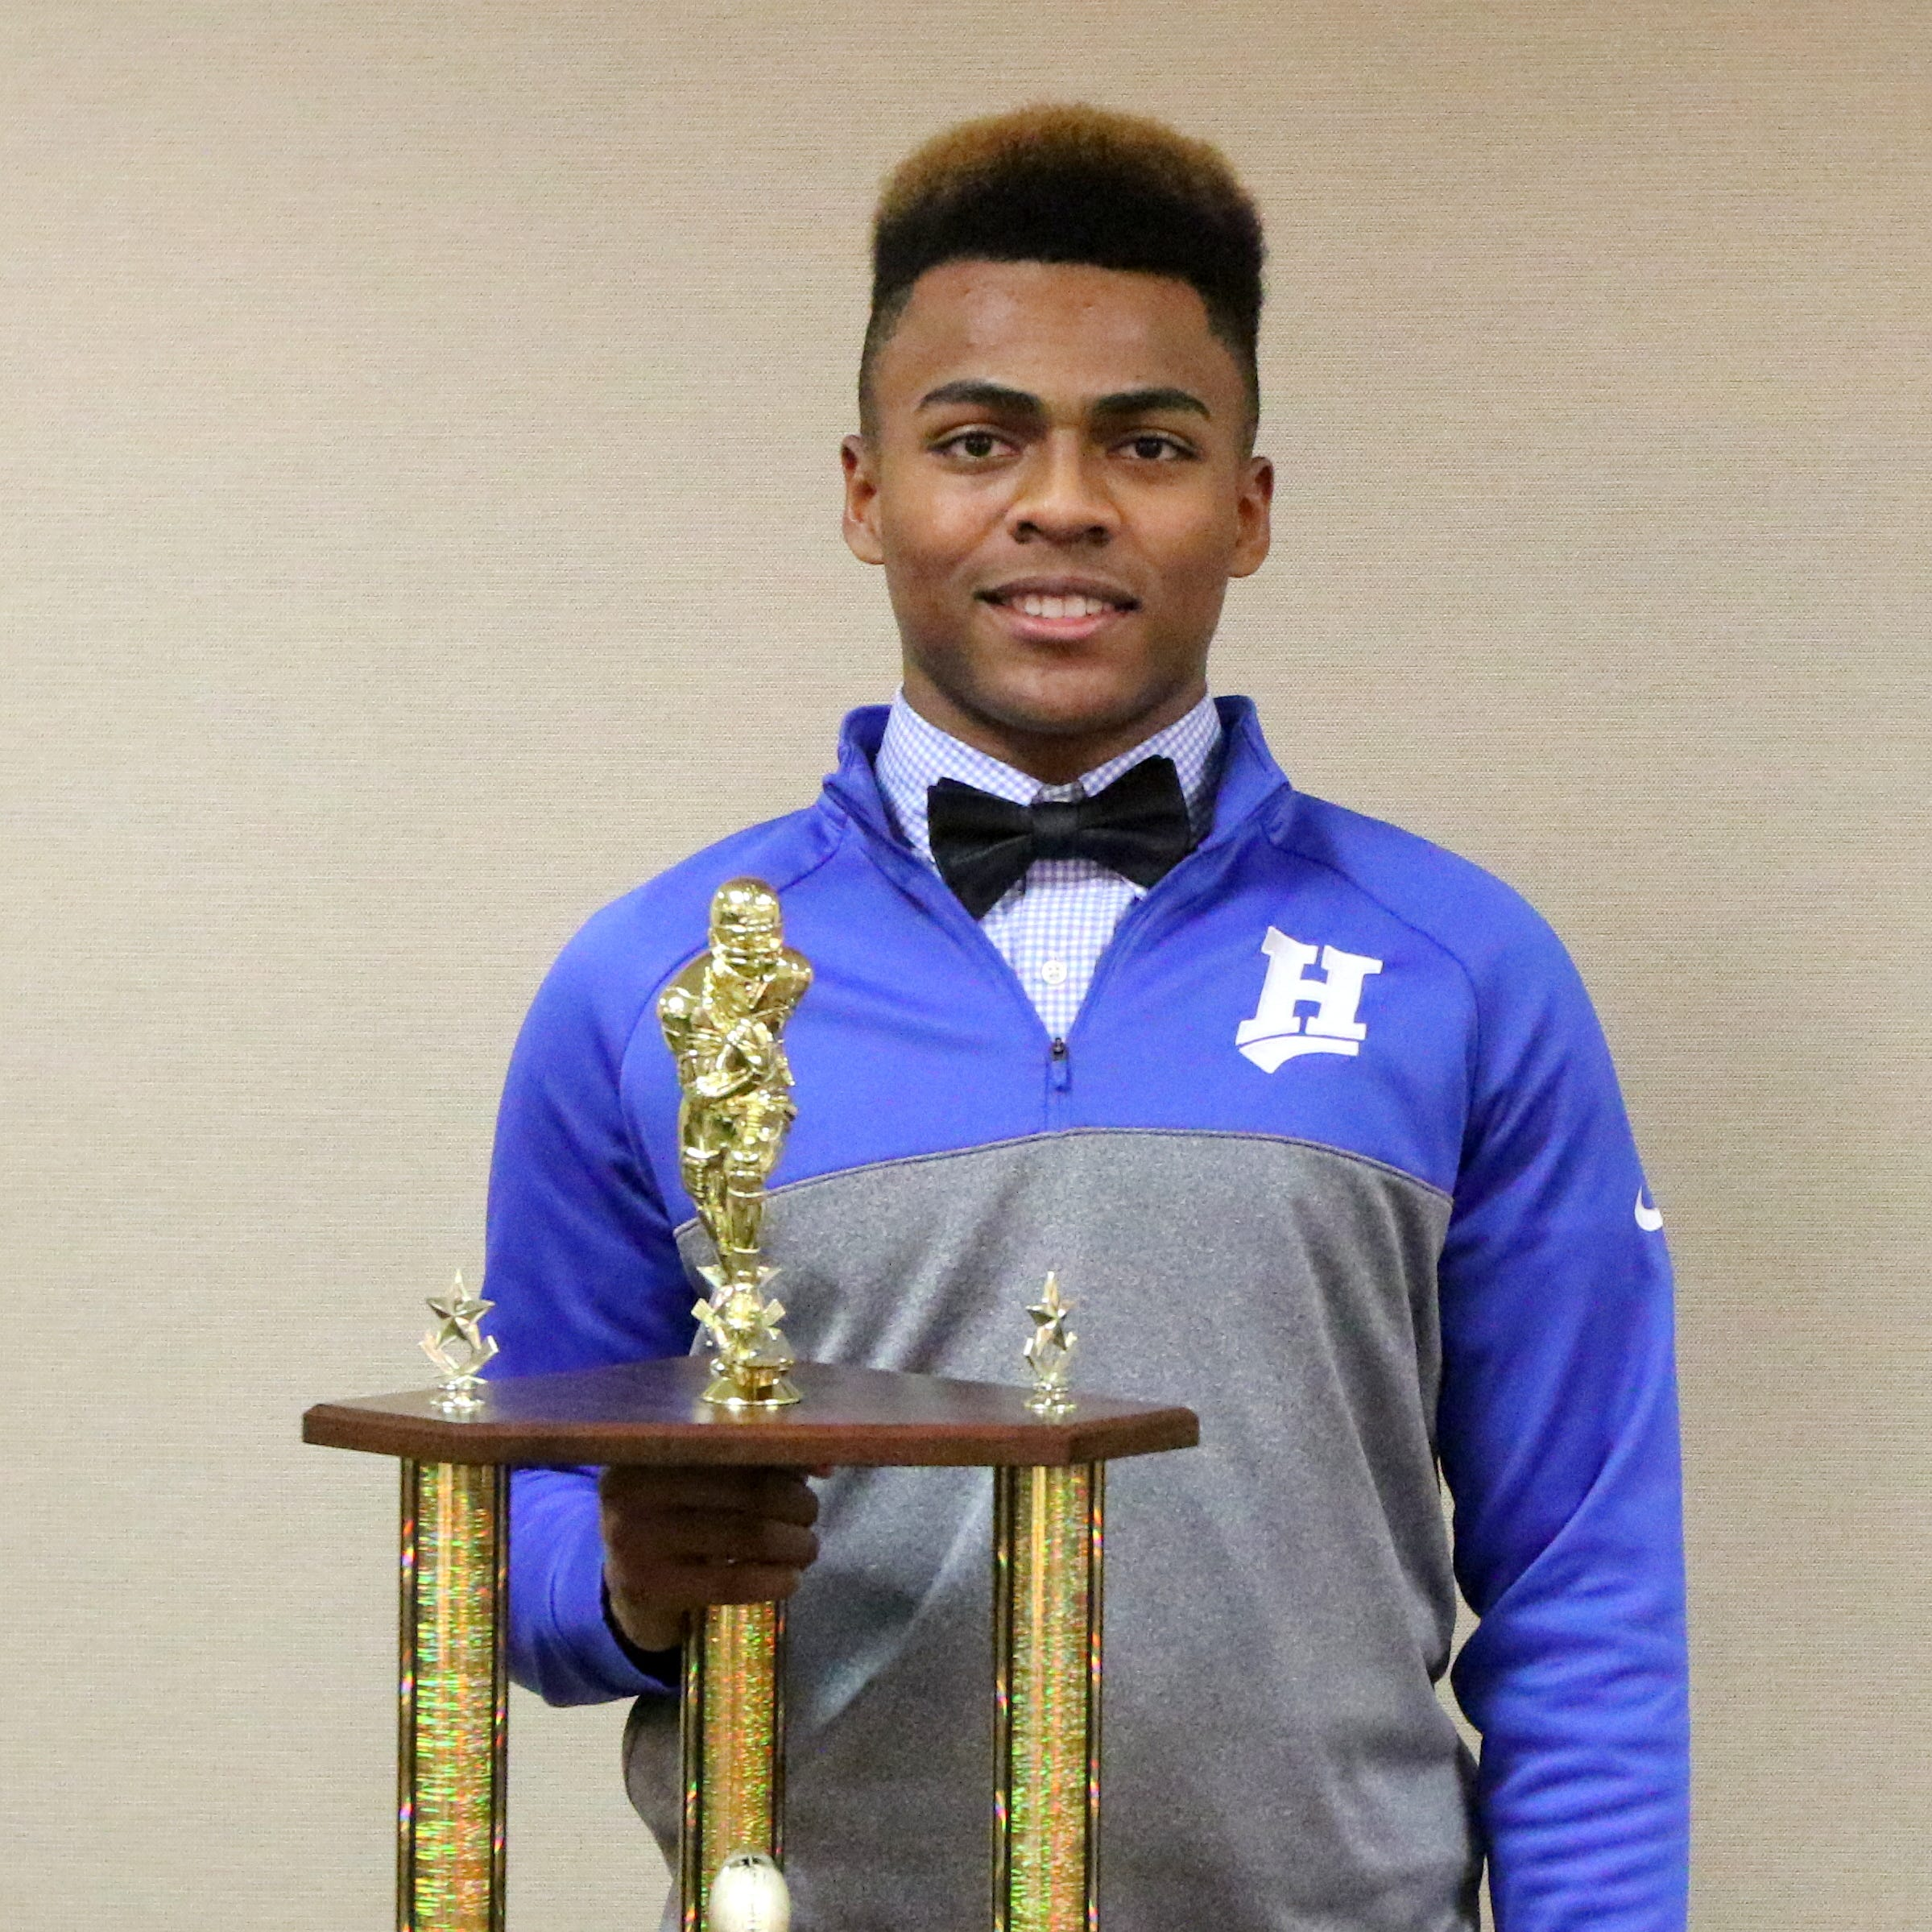 Horseheads' Maurice Rankins Jr. captures Ernie Davis Award; three win Joel Stephens Award